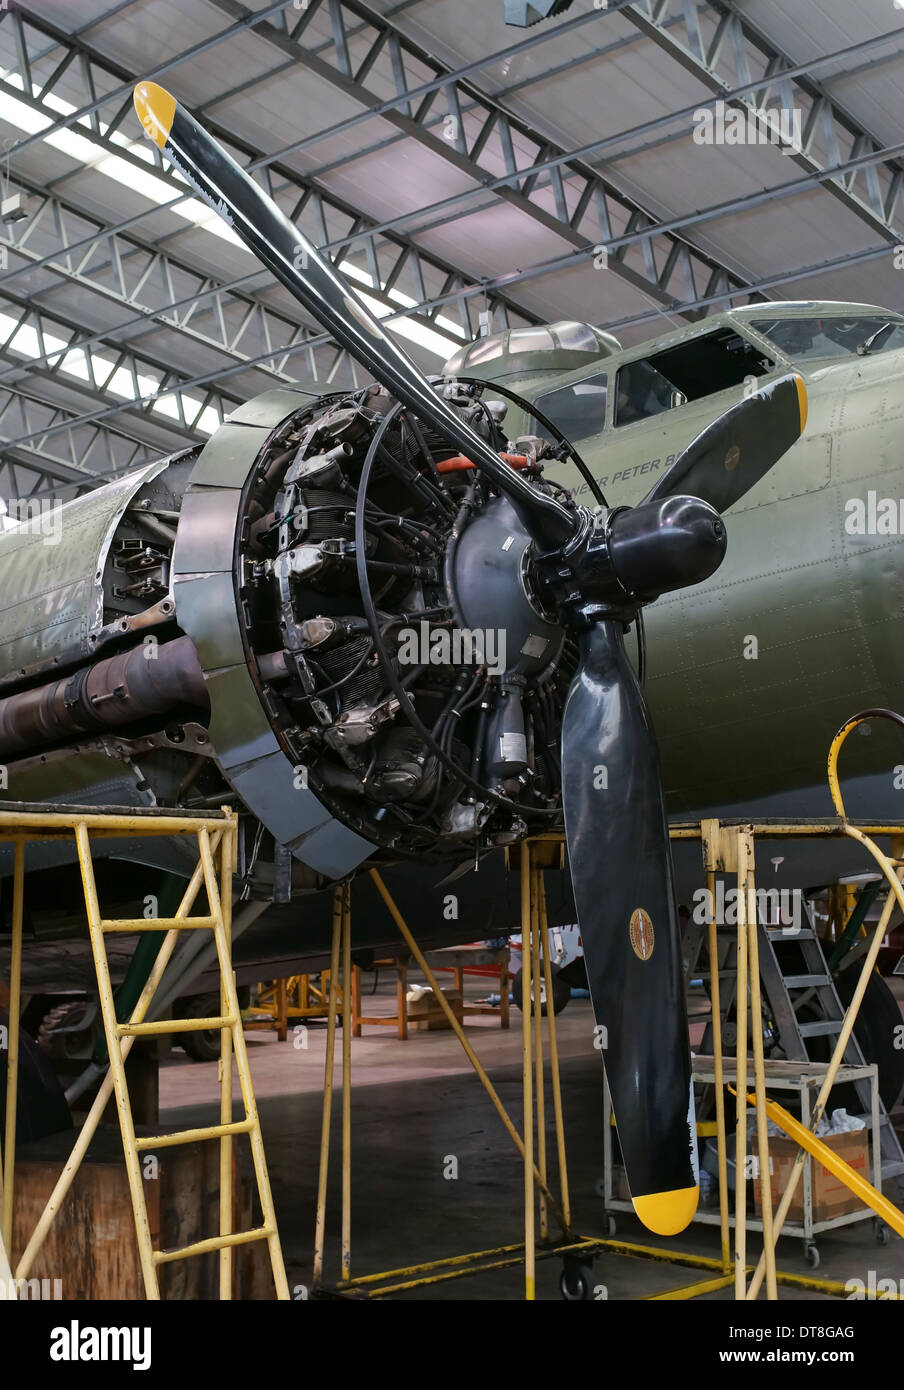 Wright R 1820 Radial aero engine fitted to Boeing B17 Flying fortress Duxford imperial war museum England UK - Stock Image